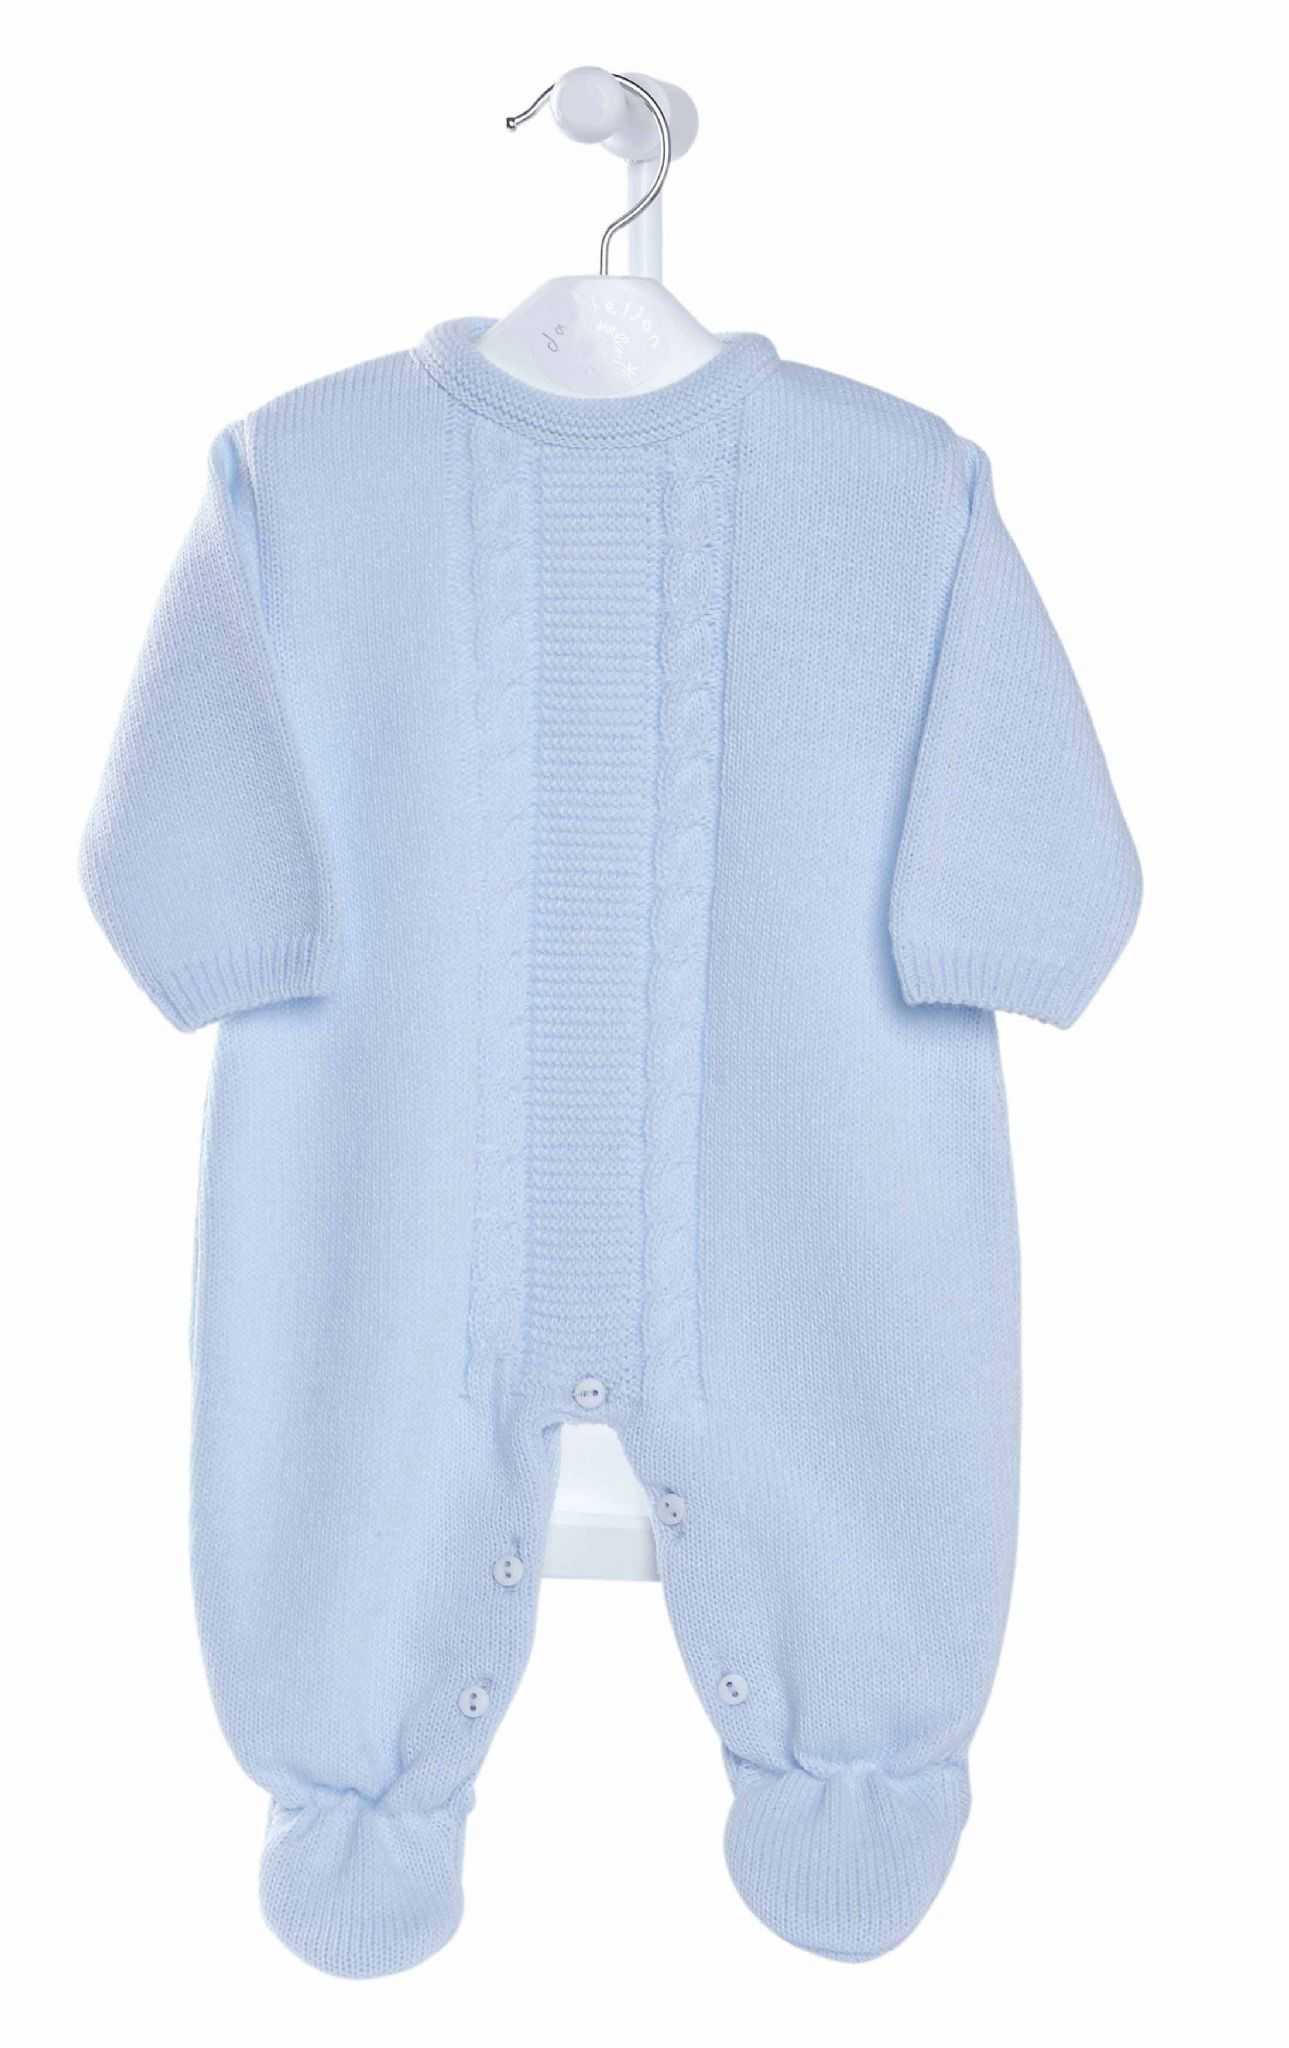 Knitting Jacket For Boy : A boys knitted baby coat